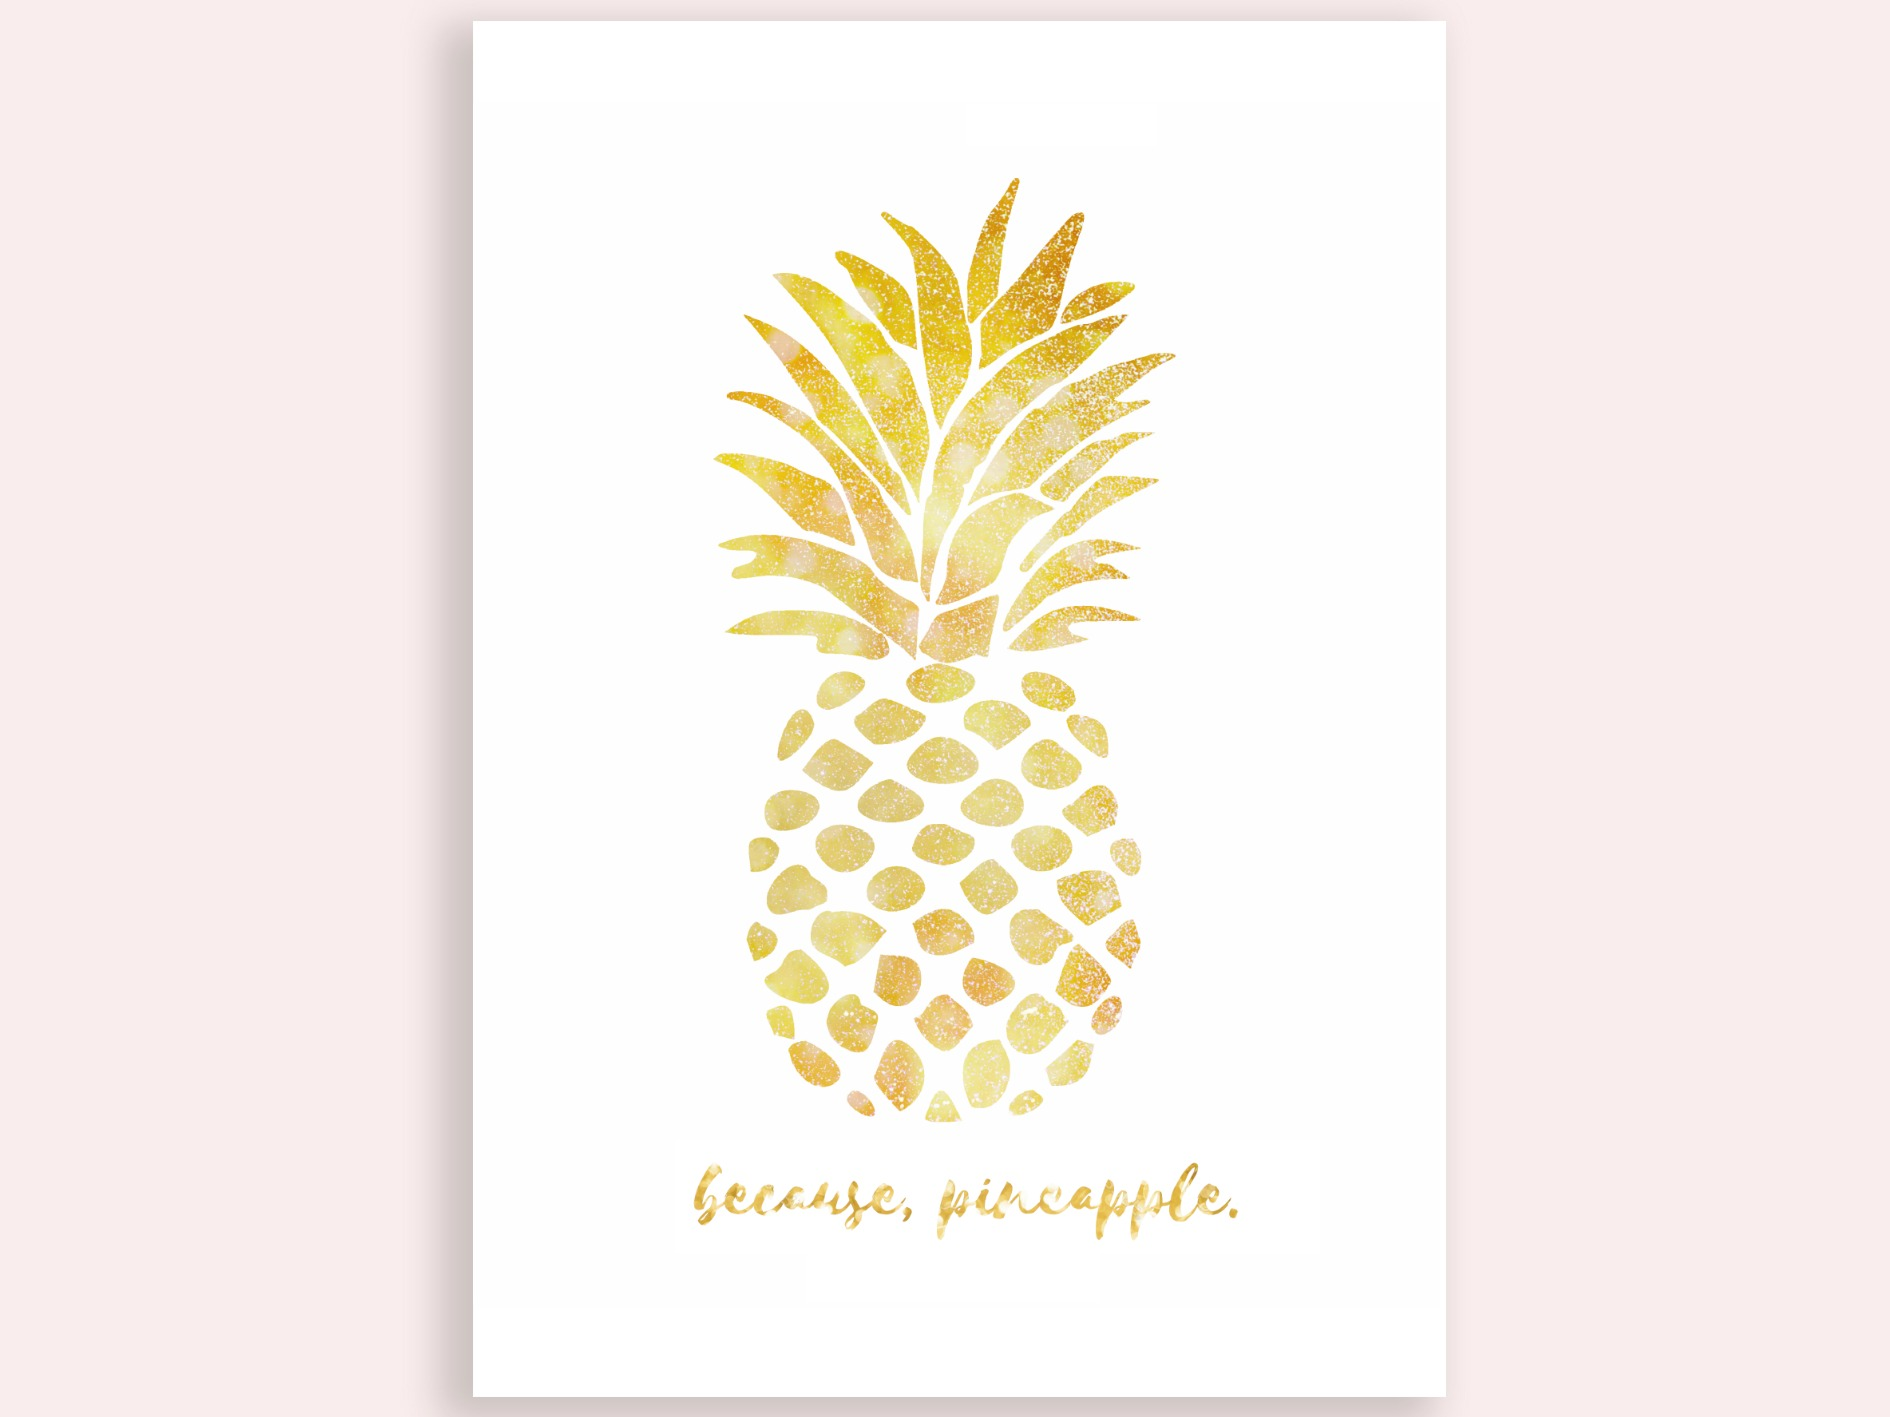 picture relating to Free Printable Pineapple identified as Gold Pineapple Artwork Free of charge Printables! - Establishing Stunning